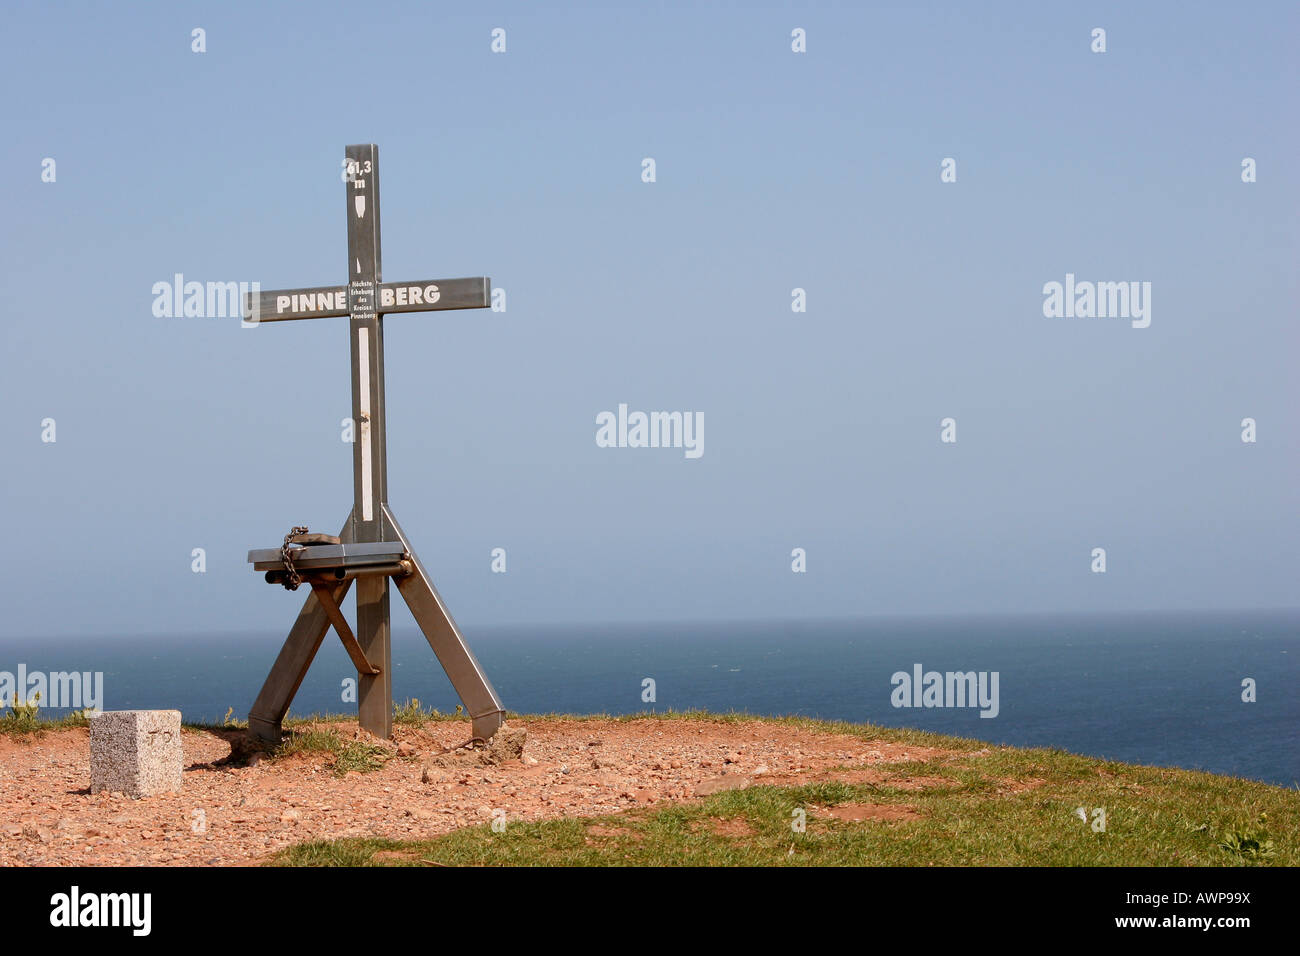 Mountain summit cross marking Heligoland island's highest point at 61.3 meters, County Pinneberg, Schleswig - Stock Image